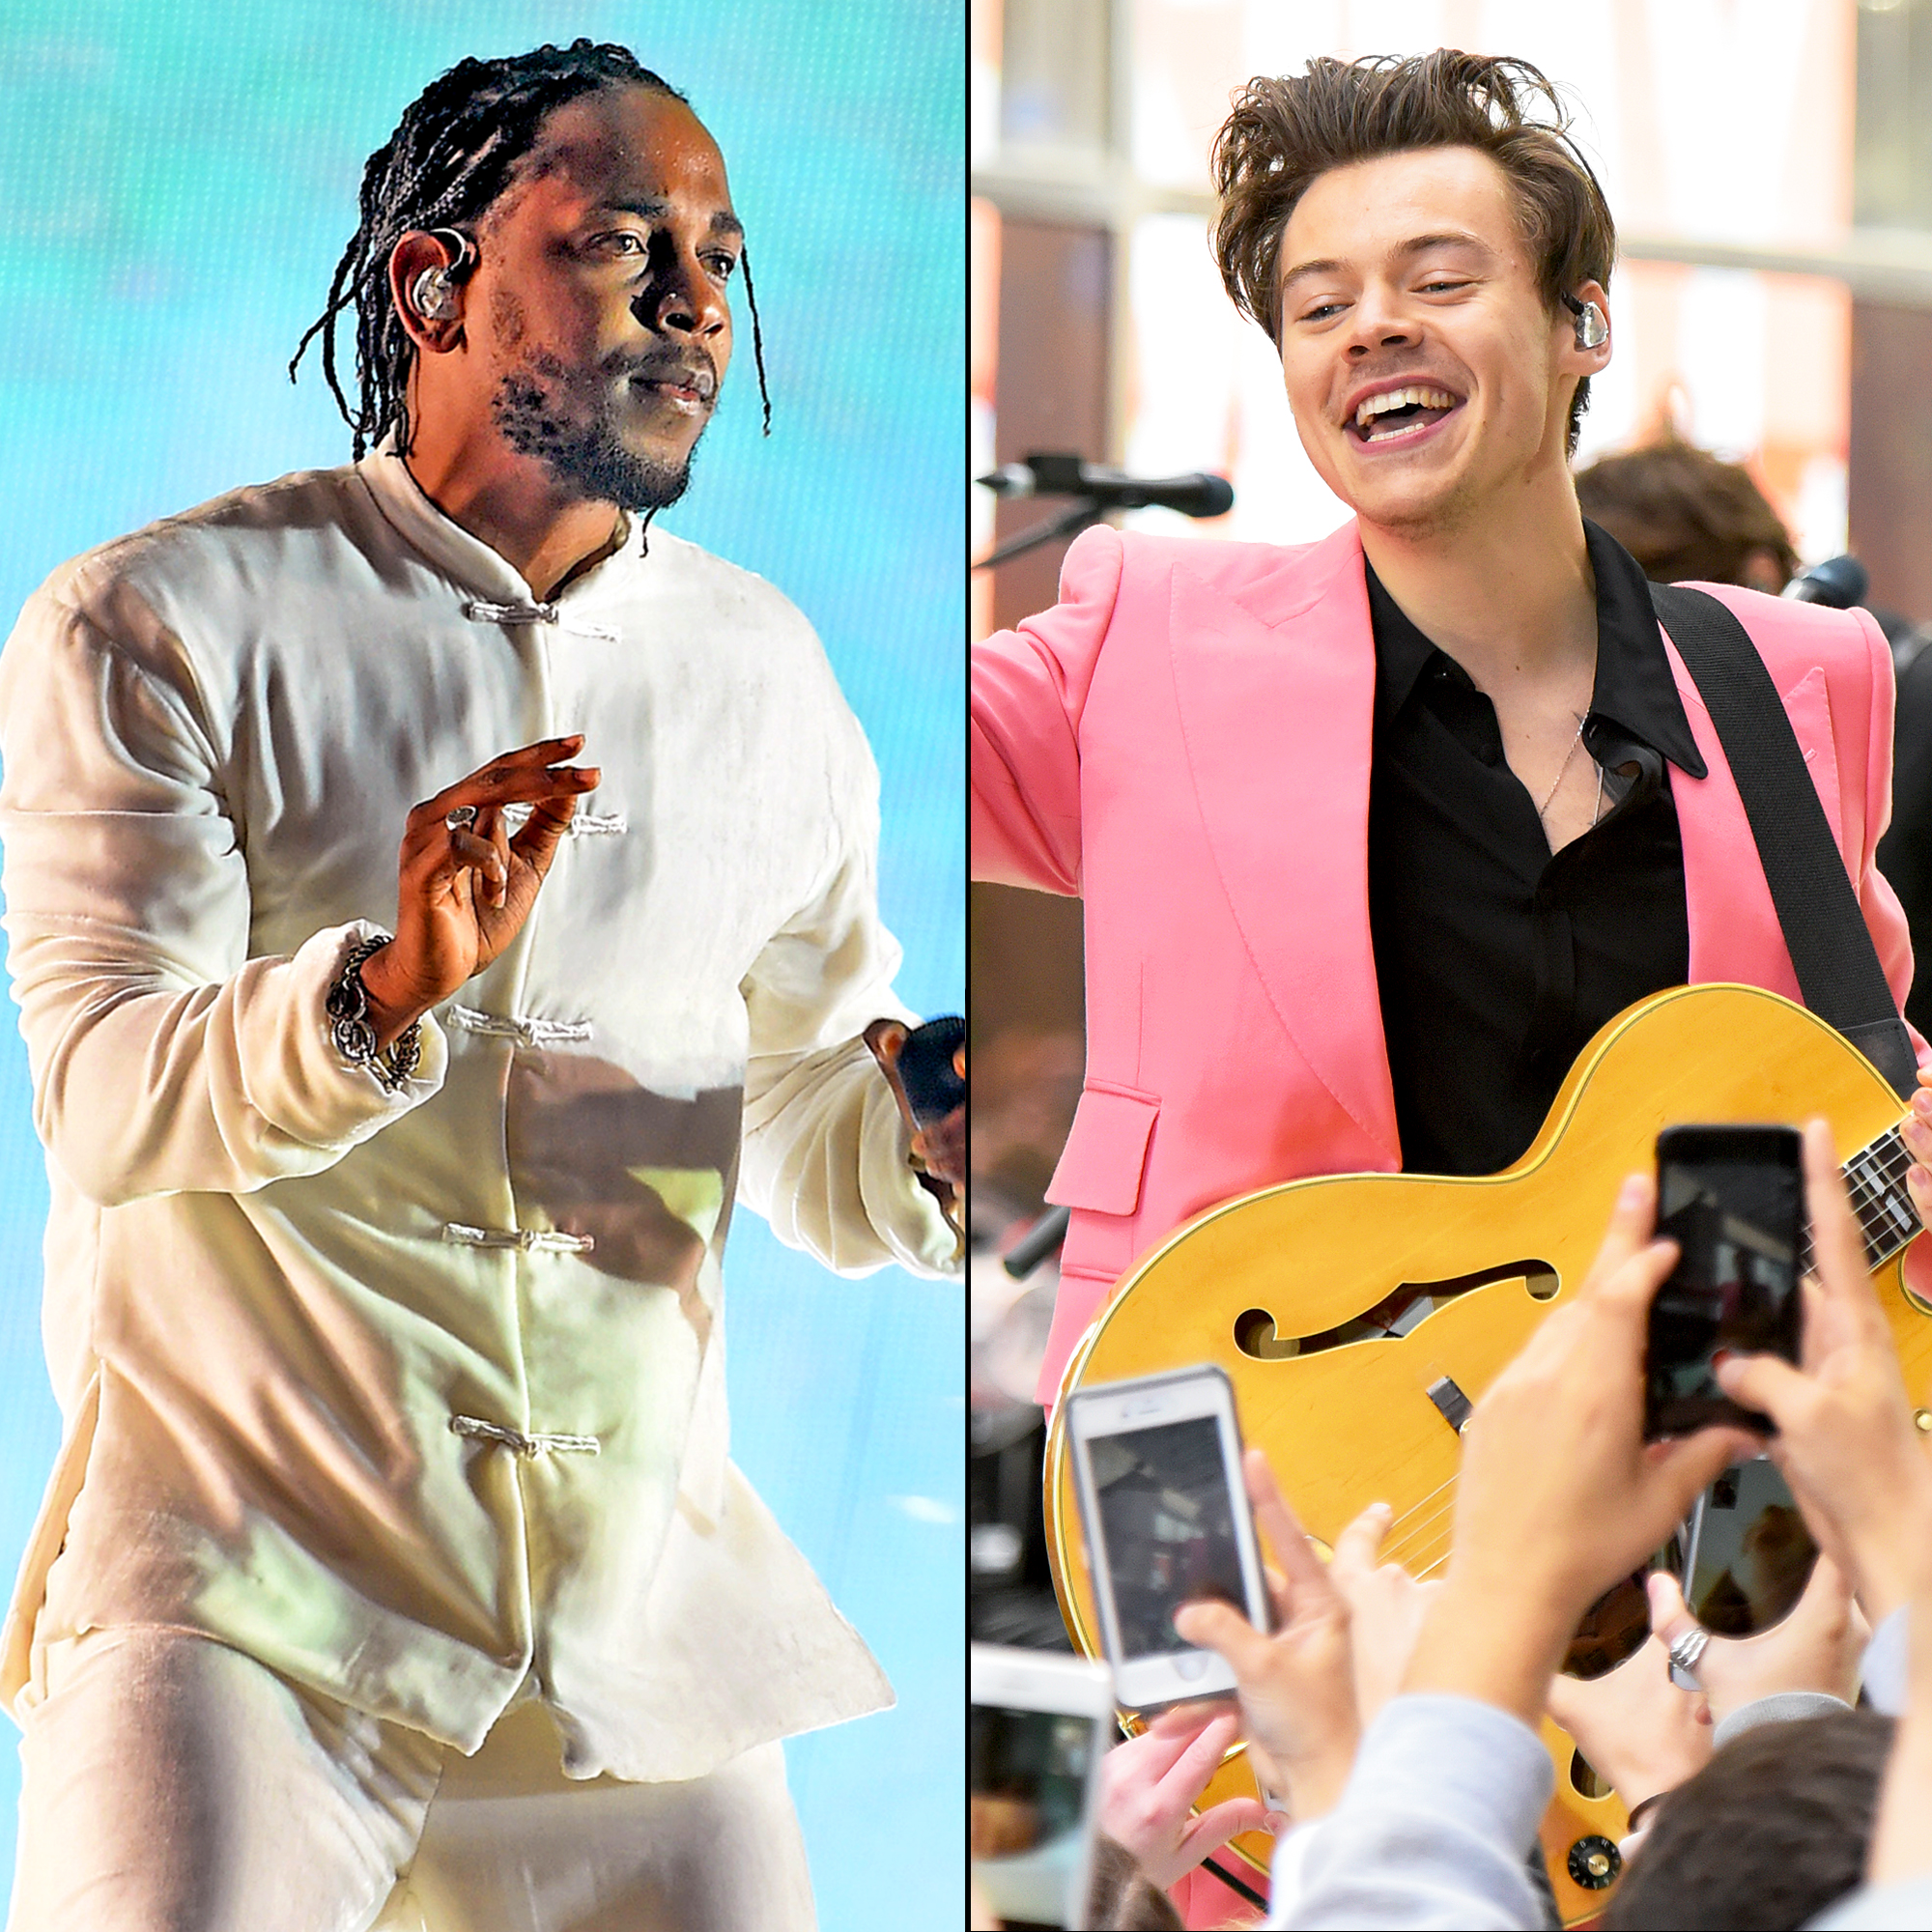 Kendrick Lamar and Harry Styles